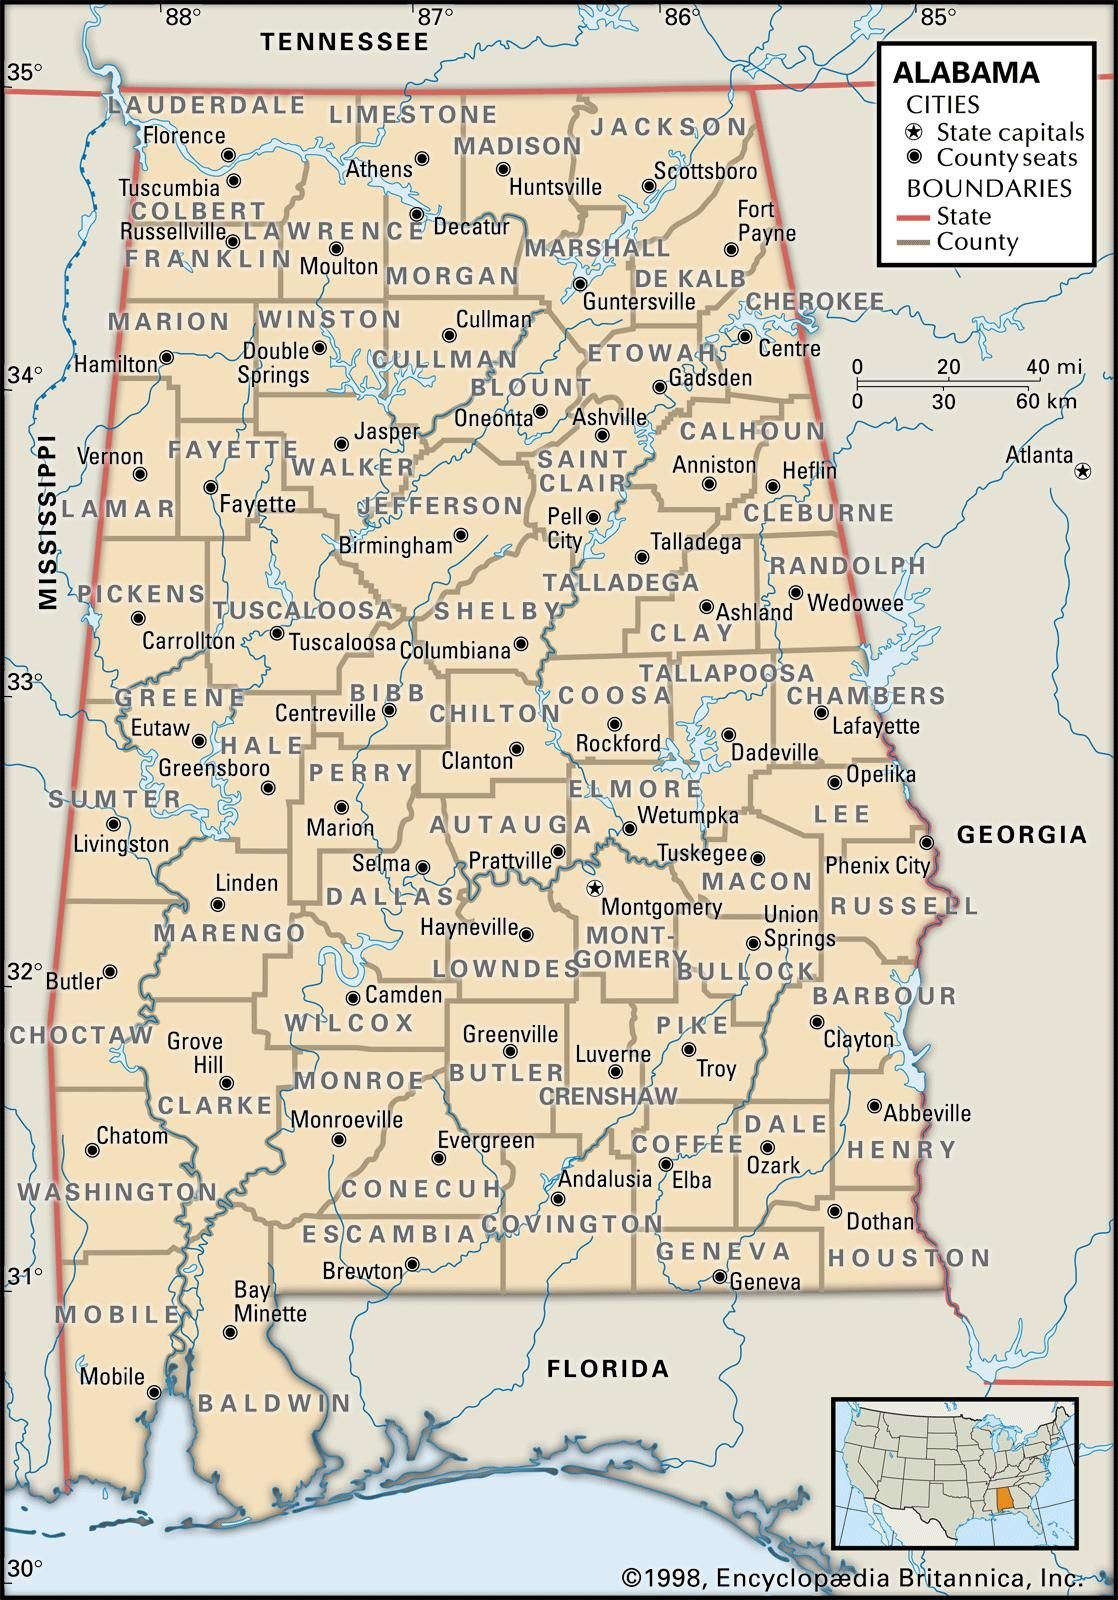 Alabama State Map By County.Map Of Alabama County Boundaries And County Seats Genealogy